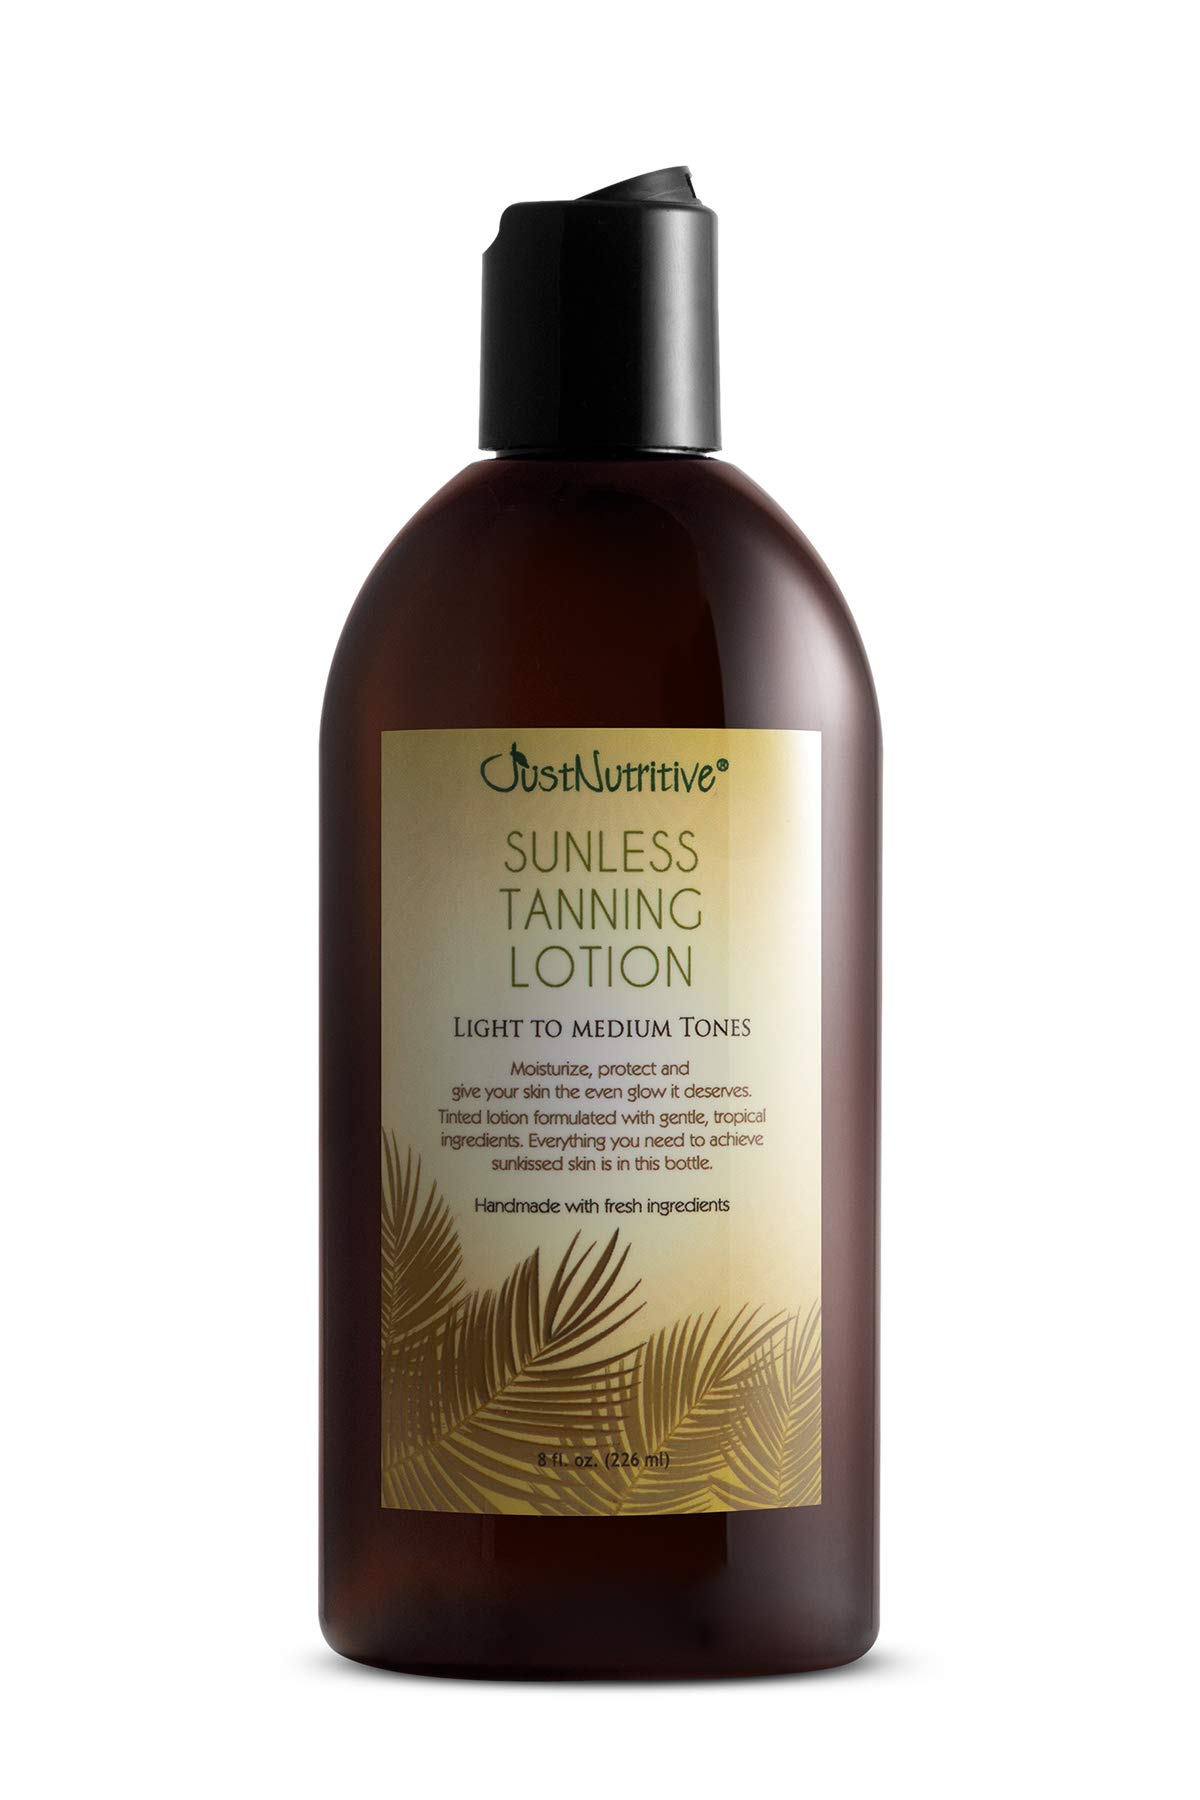 Sunless Tanning Lotion - Light to Medium tones by Just Nutritive